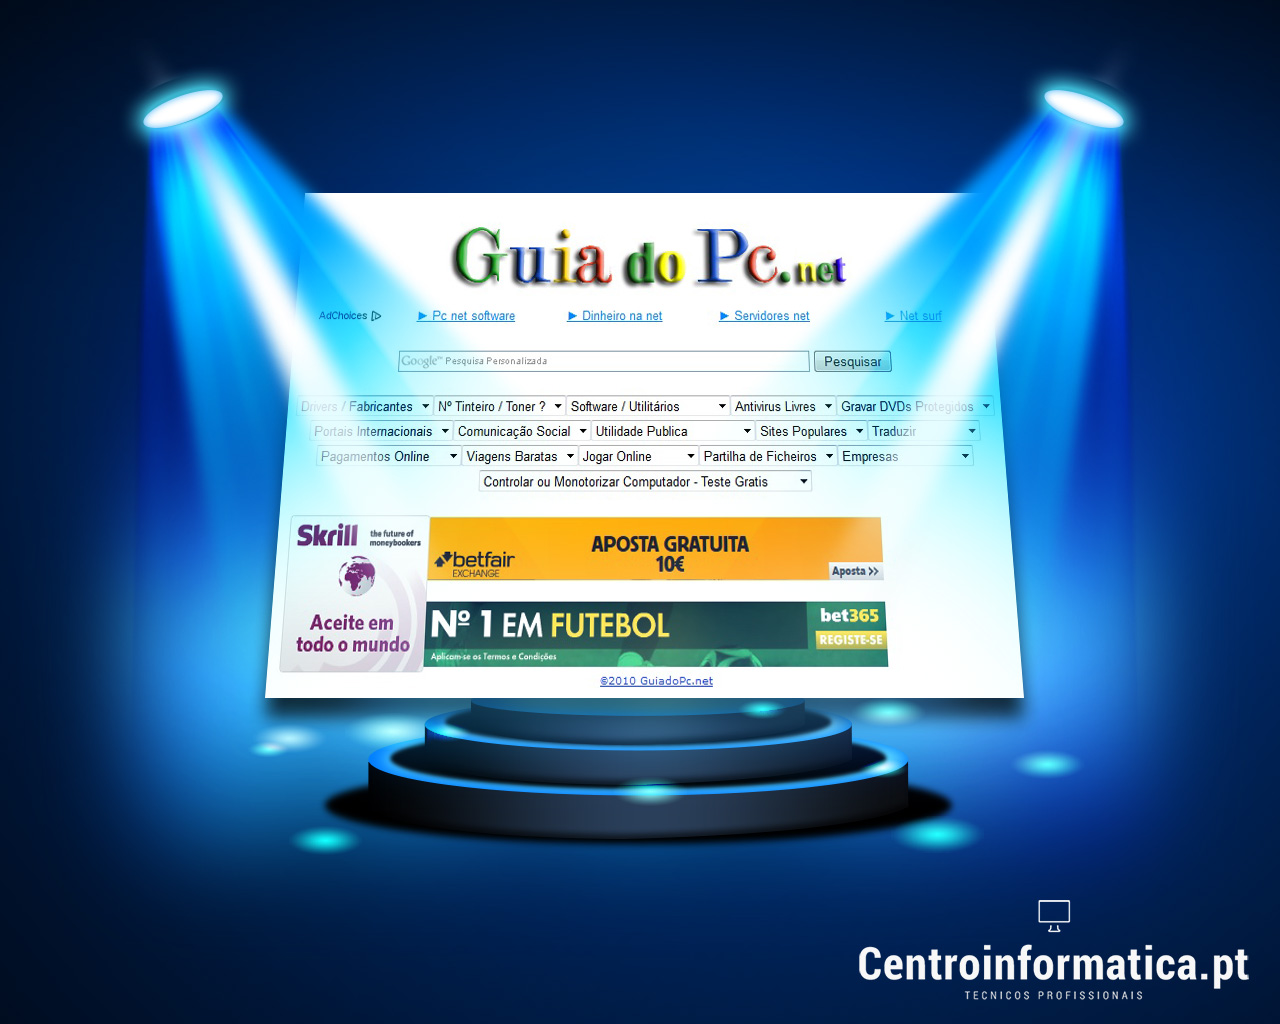 Guia do Pc